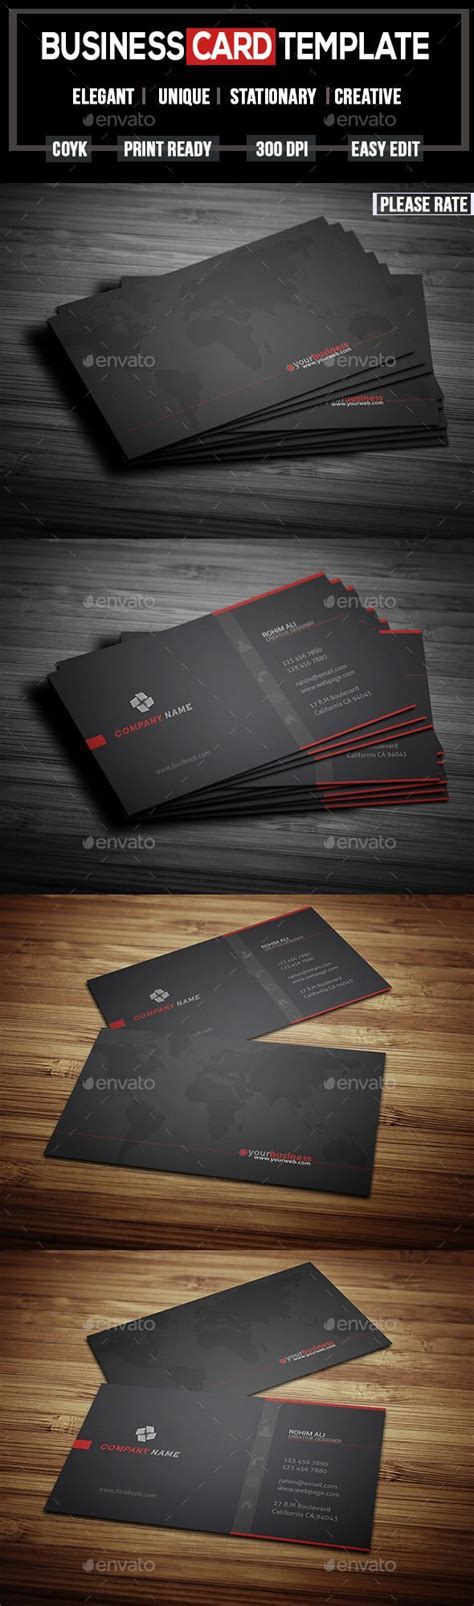 rate card template psd 17 best images about business card inspiration on